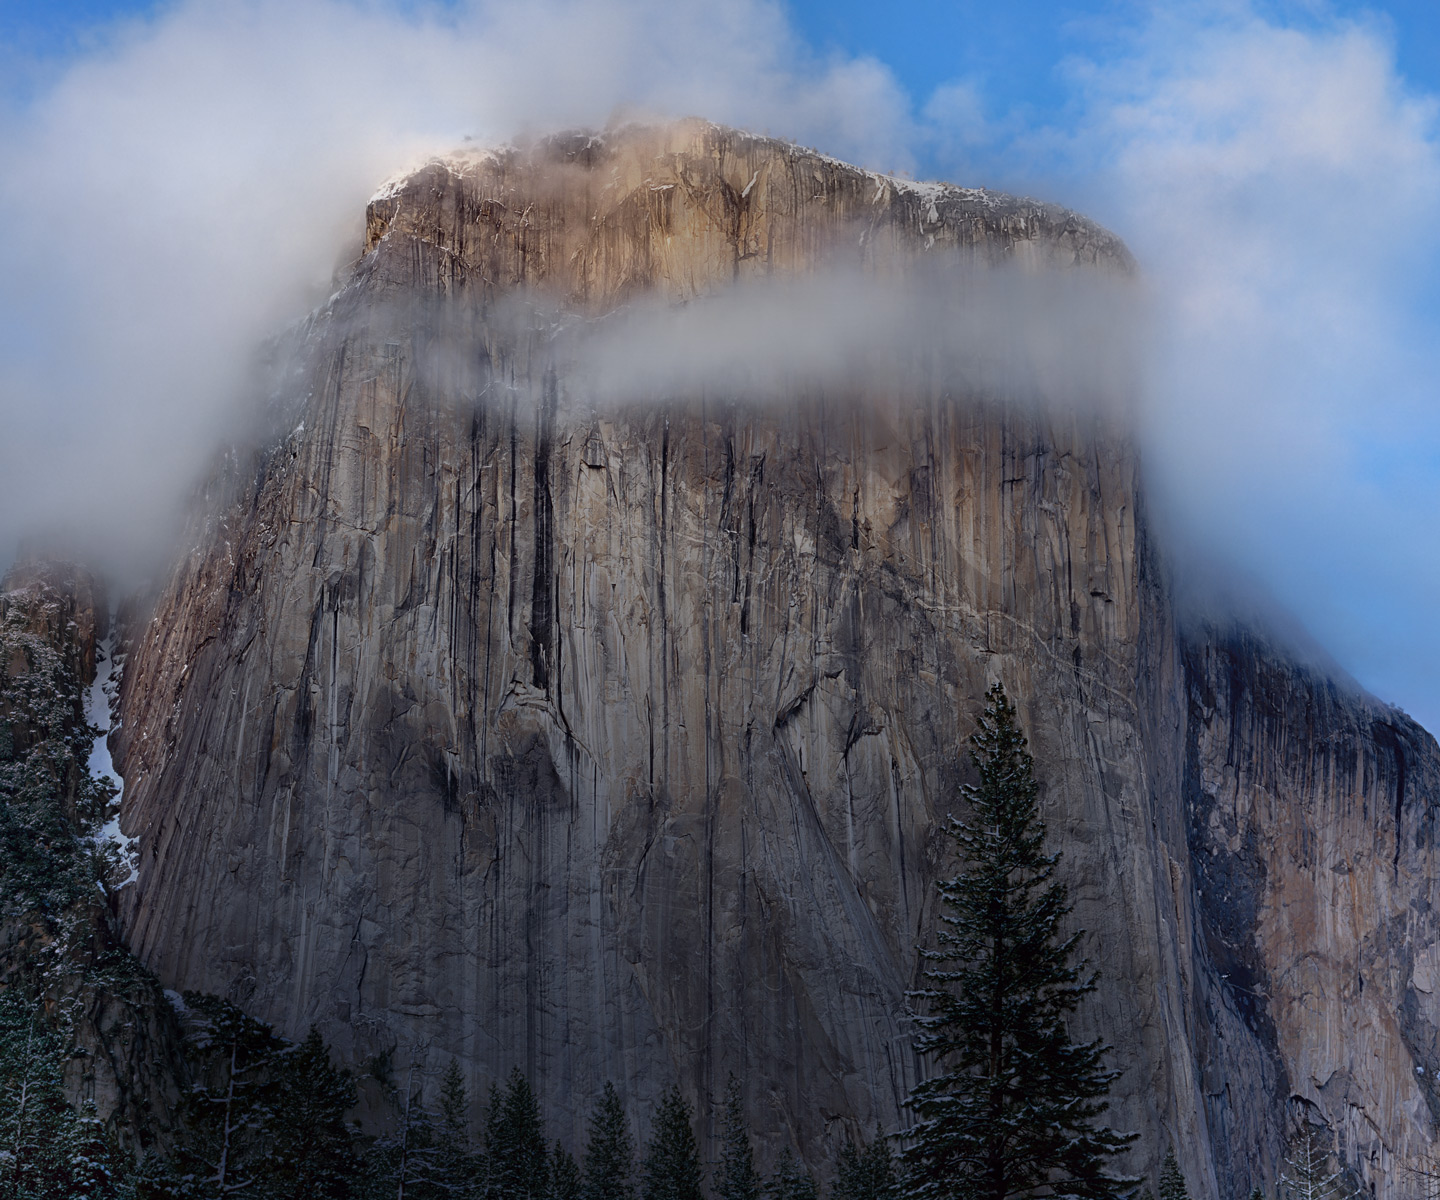 Apple releases fifth developer beta of OS X Yosemite 10.10.2